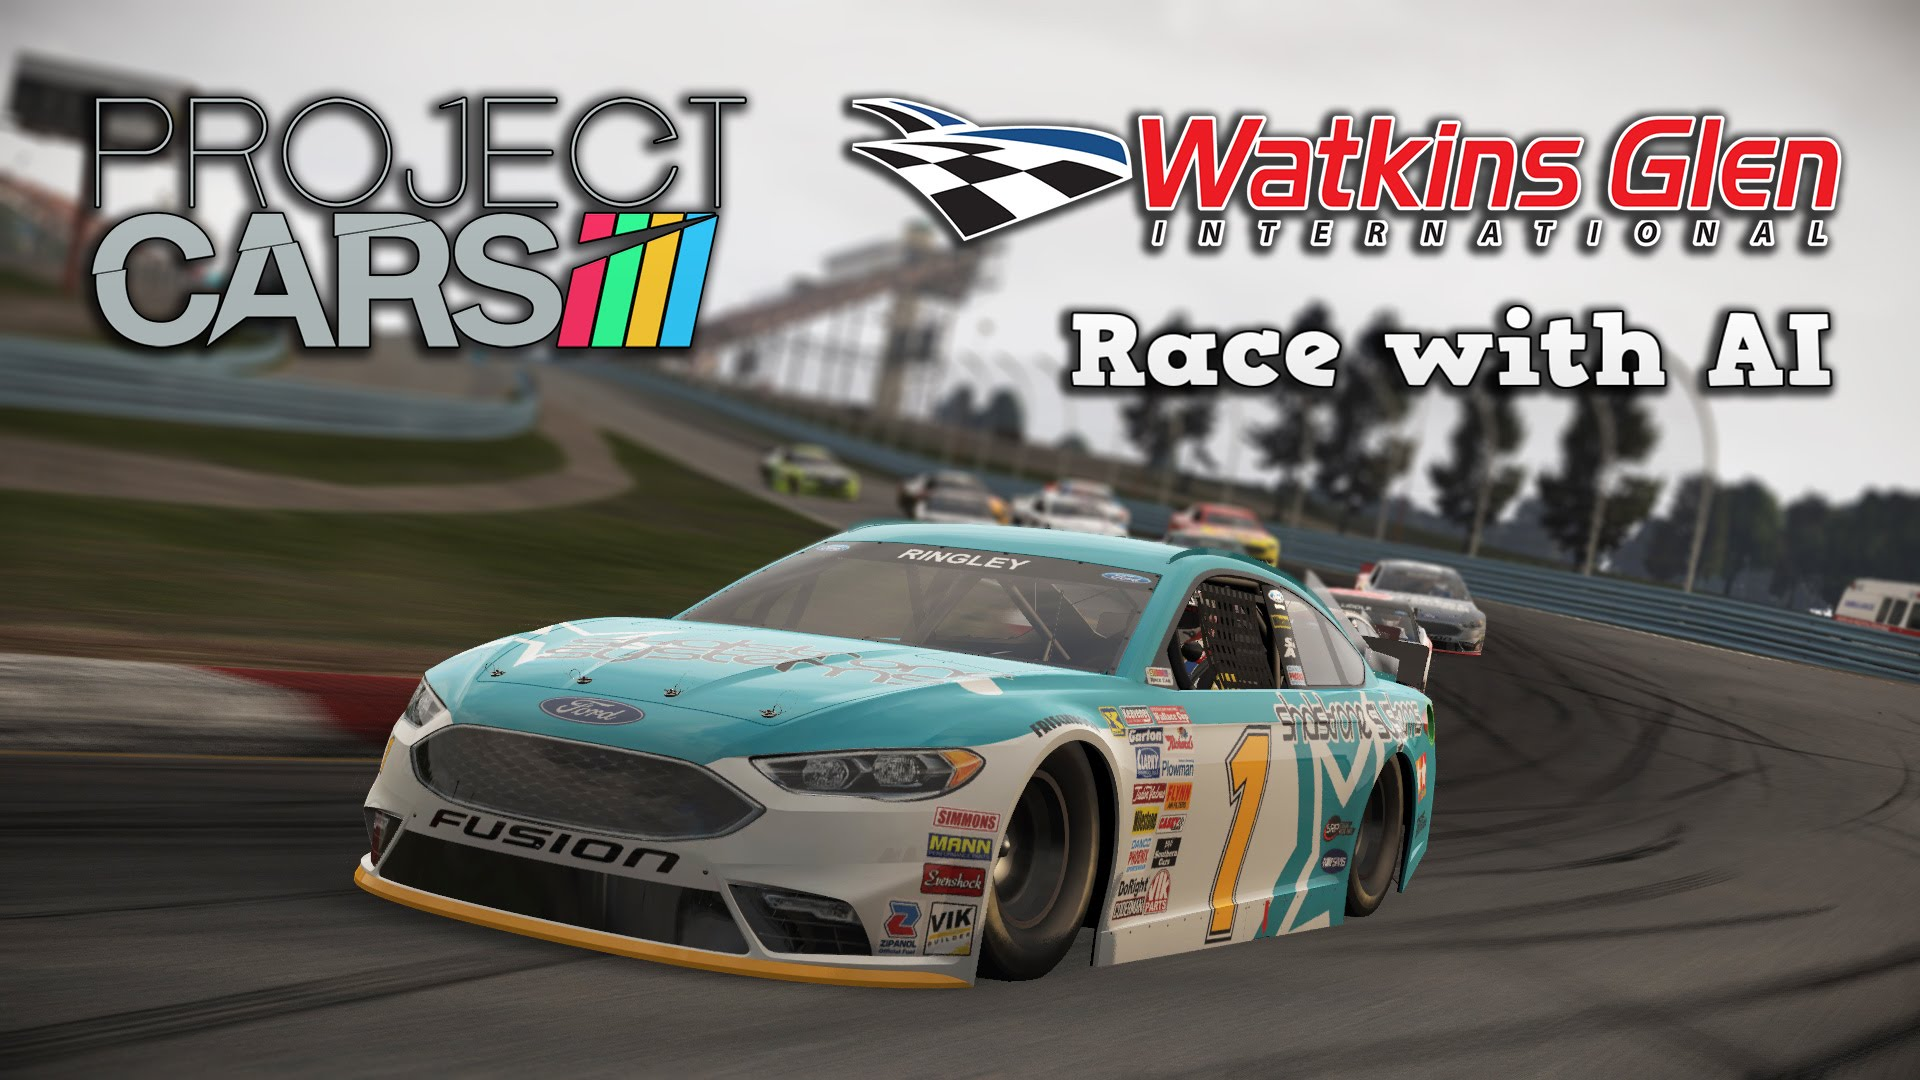 Project CARS | US Race Car Pack | 2016 Ford Fusion Stock Car @ Watkins Glen